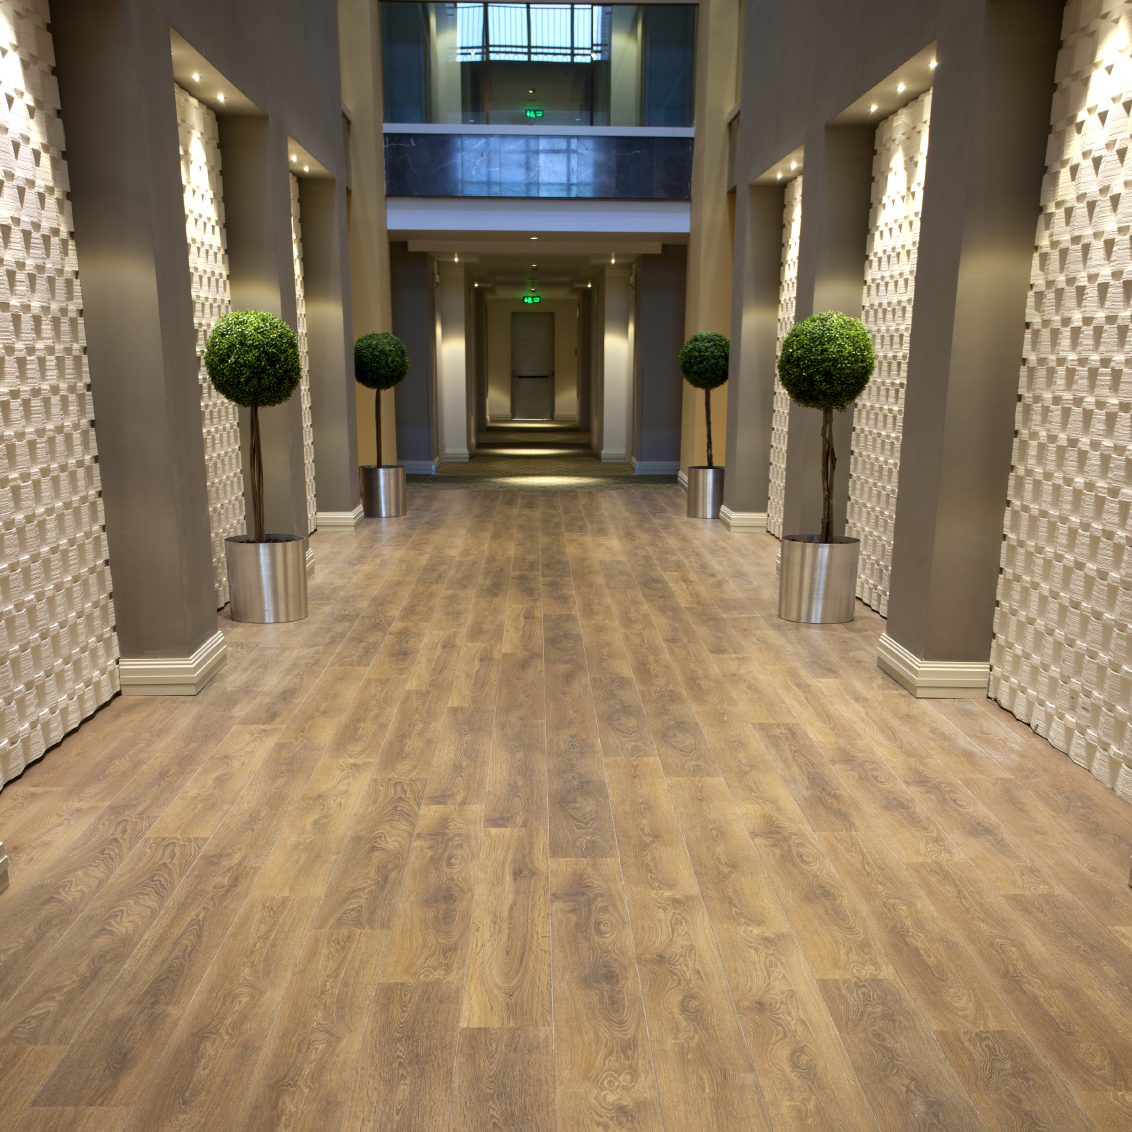 Elegant Source One Floorings Is An Innovative Provider Of Commercial Flooring  Solution In The DC Metro Area. Our Vision Is To Redefine The Flooring  Industry ...